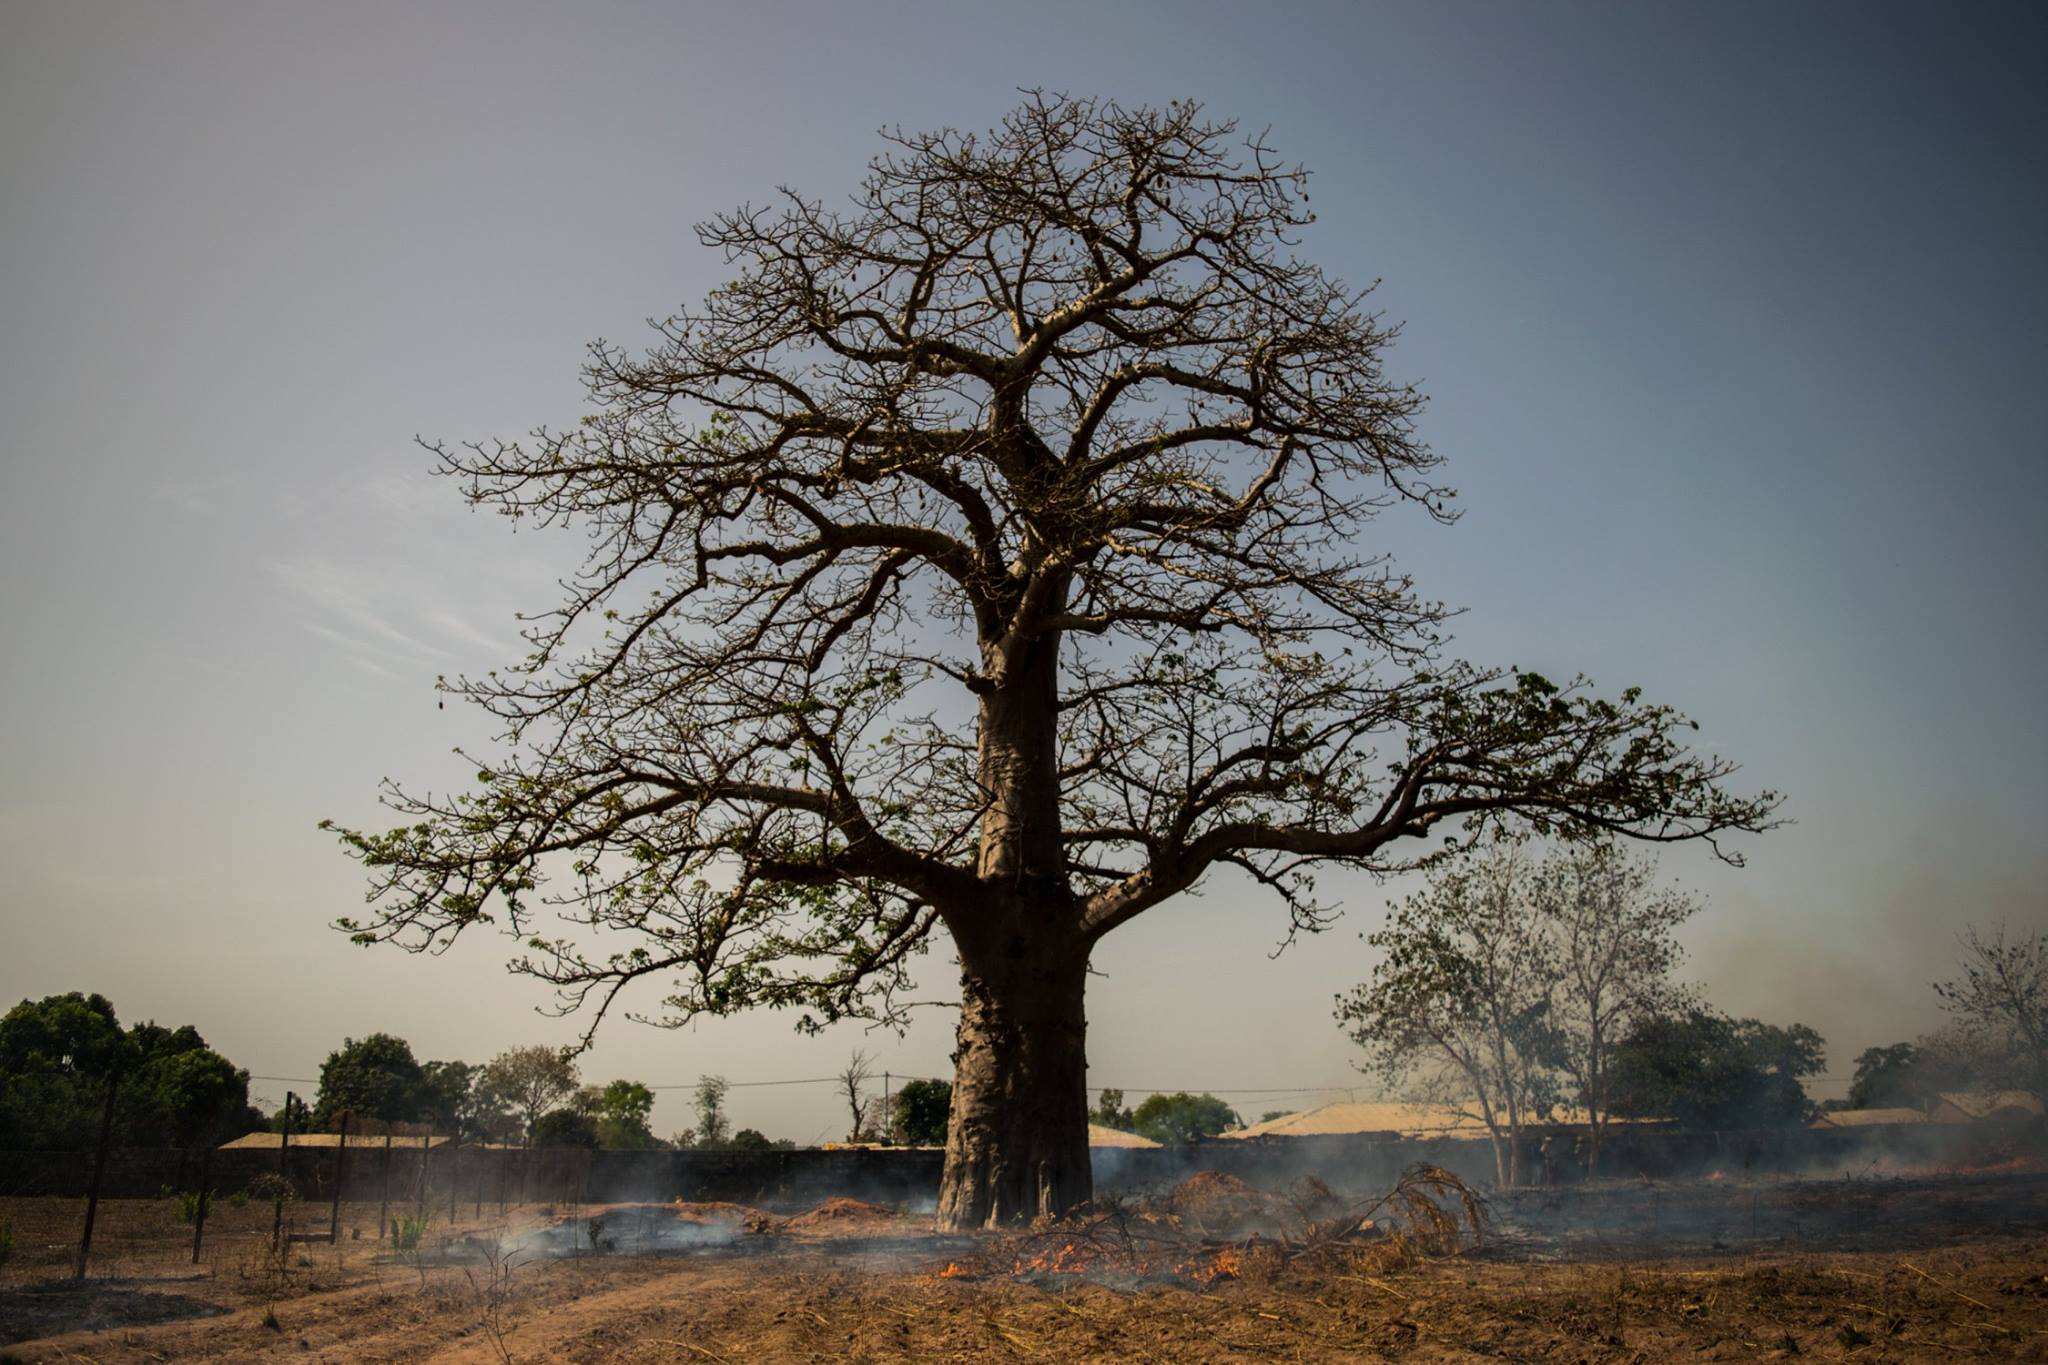 A baobab tree in the dry season